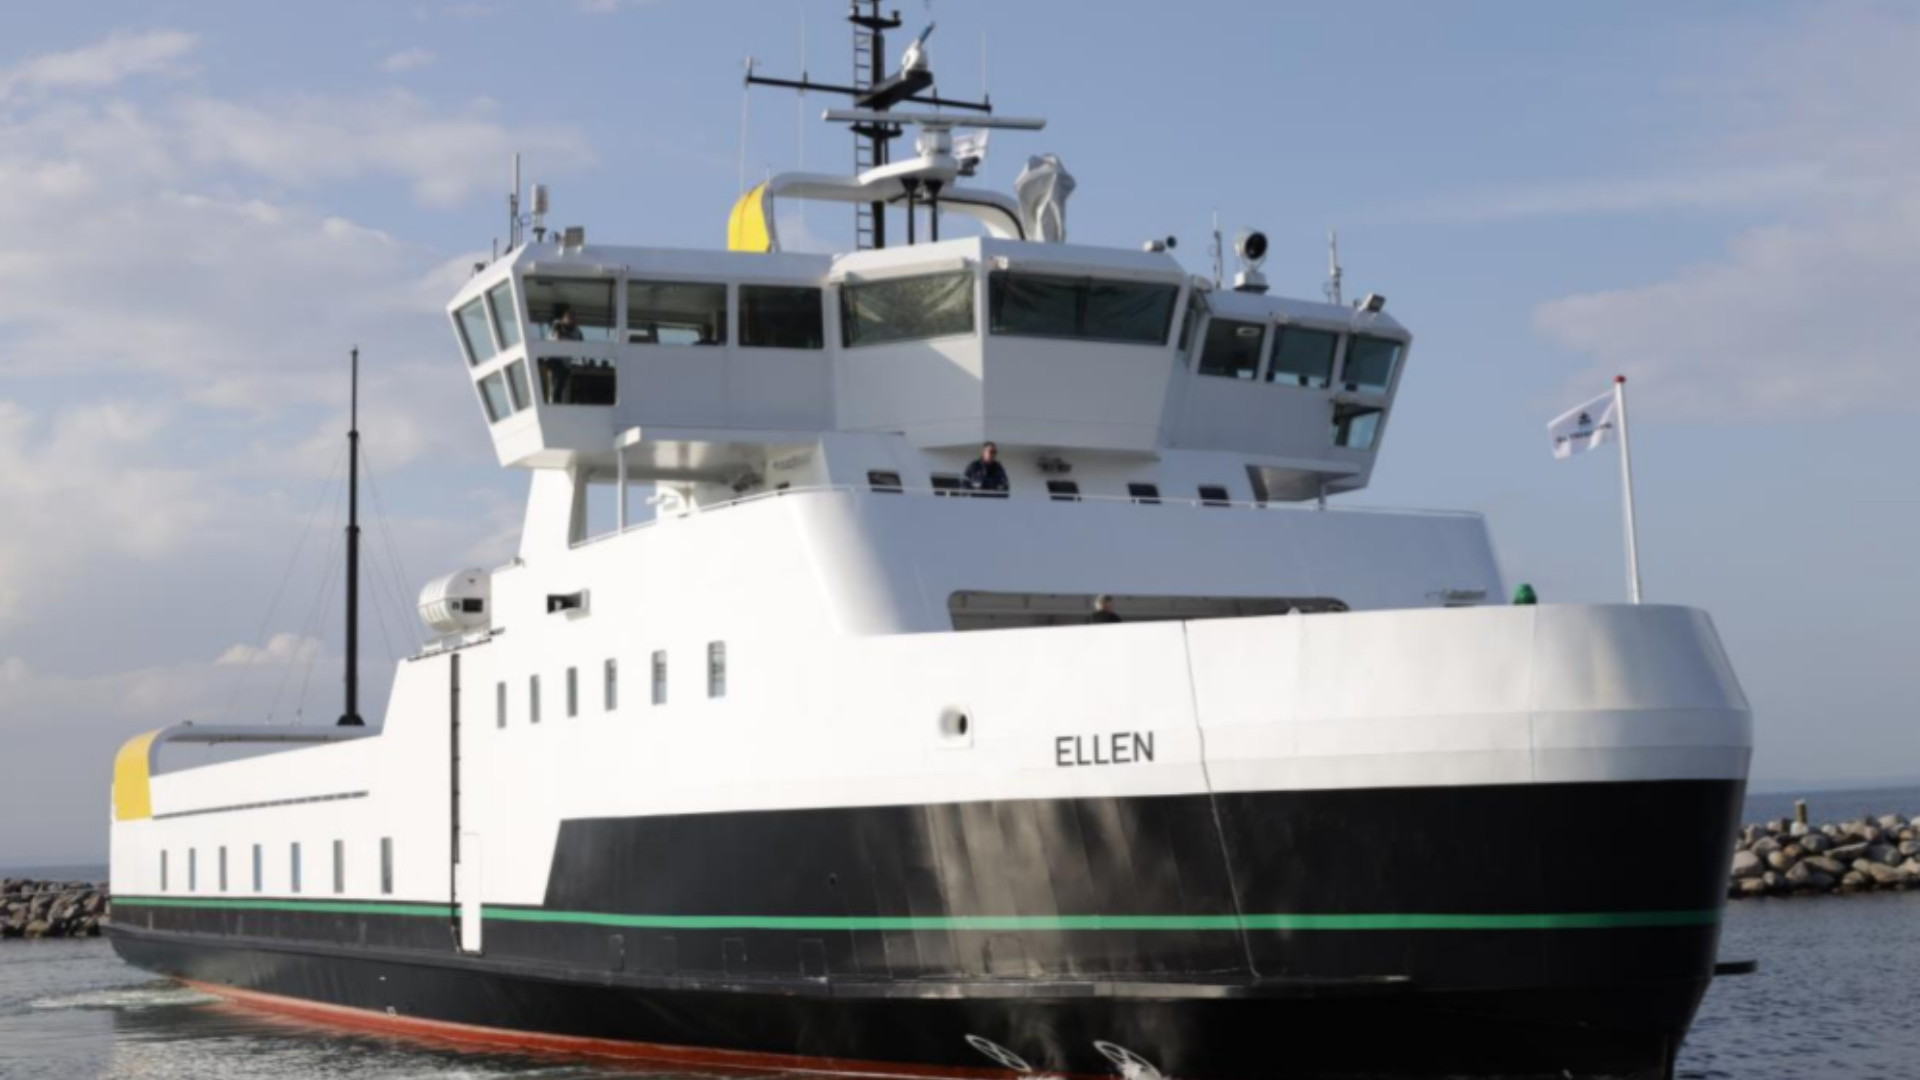 All-electric passenger and car ferry, in Denmark